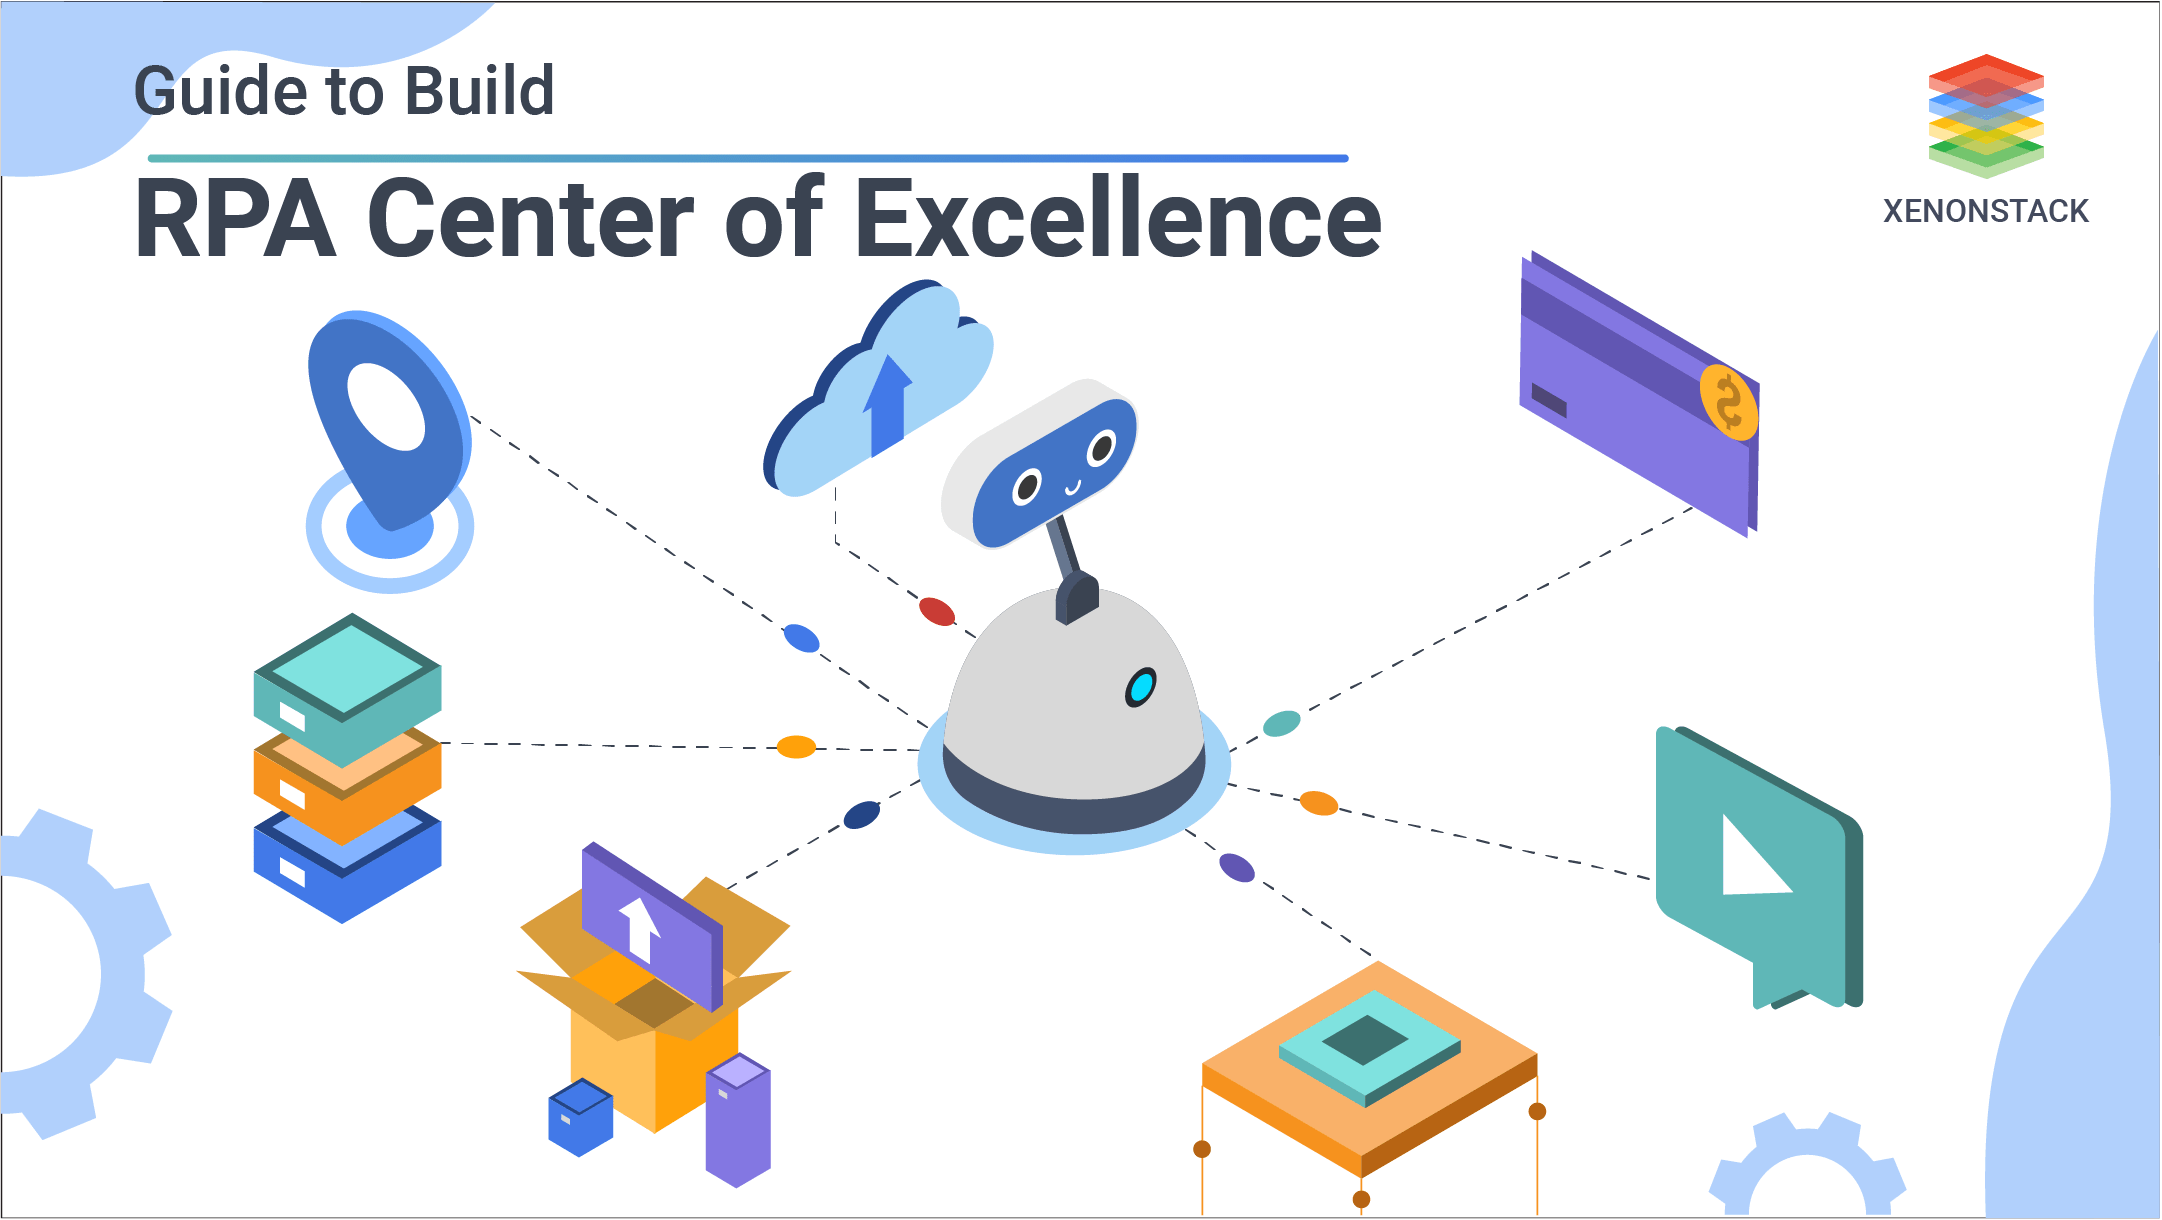 Guide to build RPA Center of Excellence